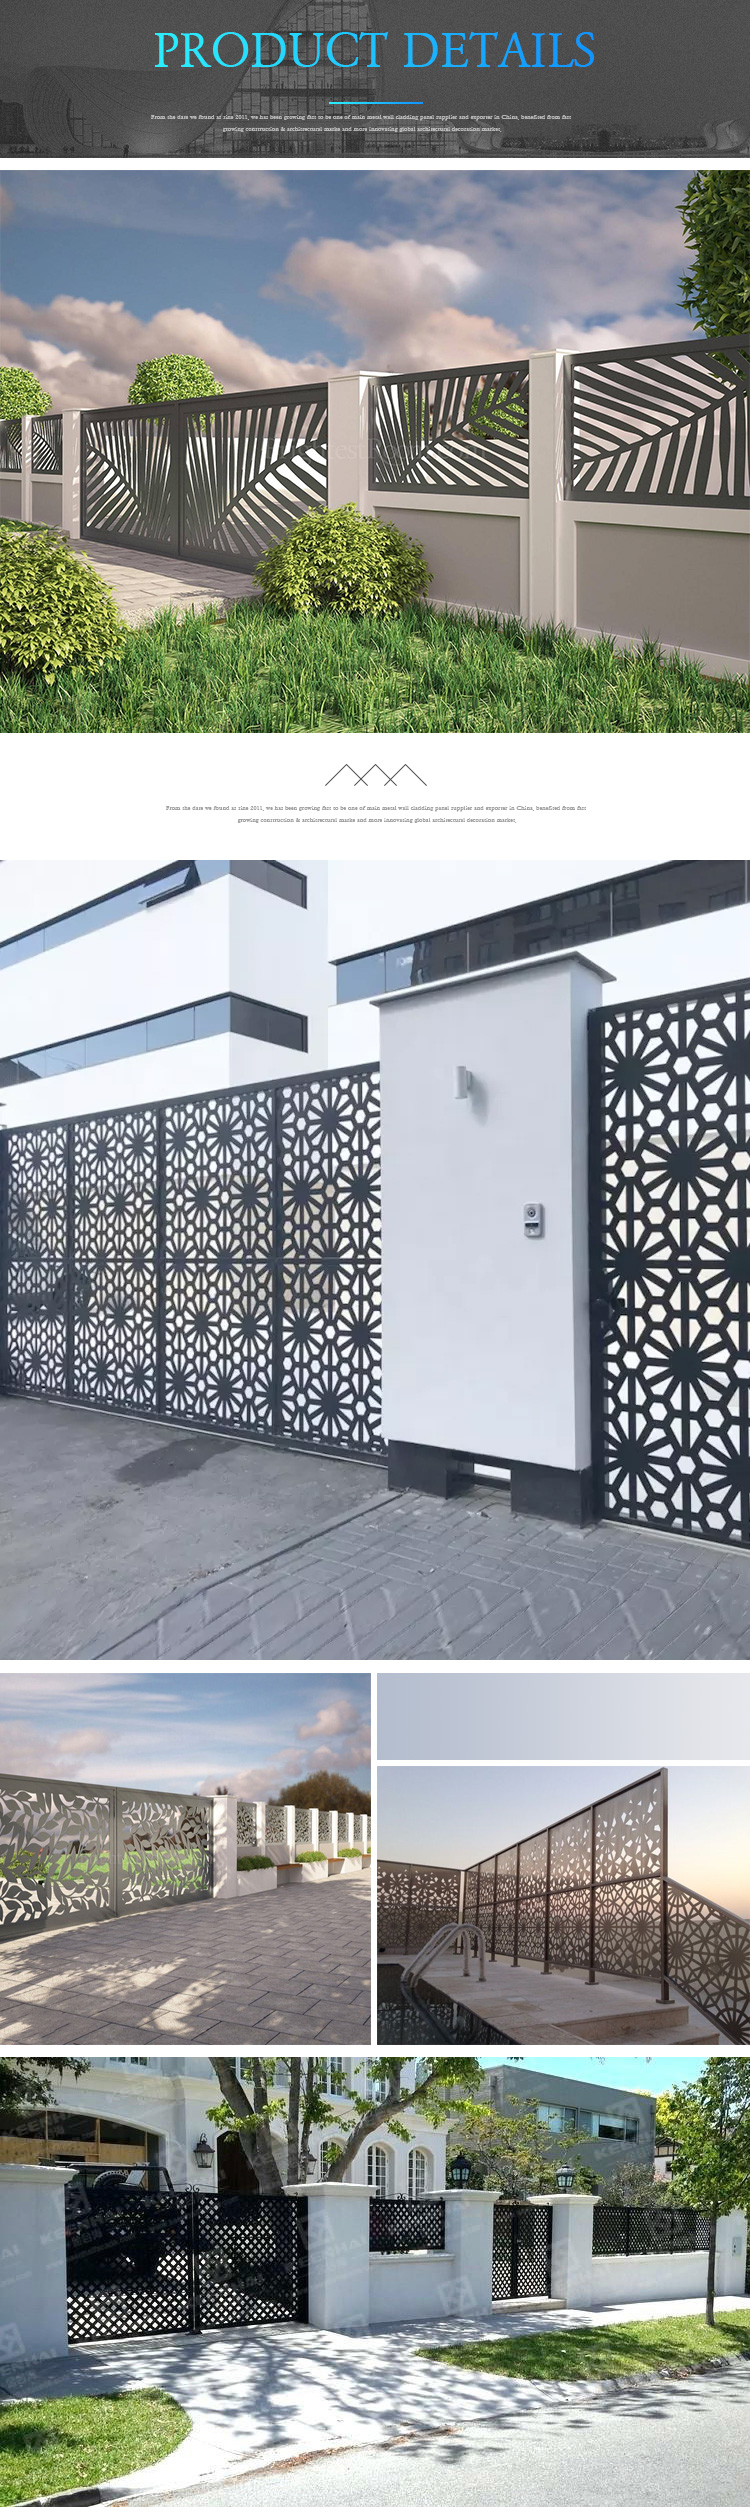 Laser Cut Decorative Aluminum Fencing Metal Fence Panels